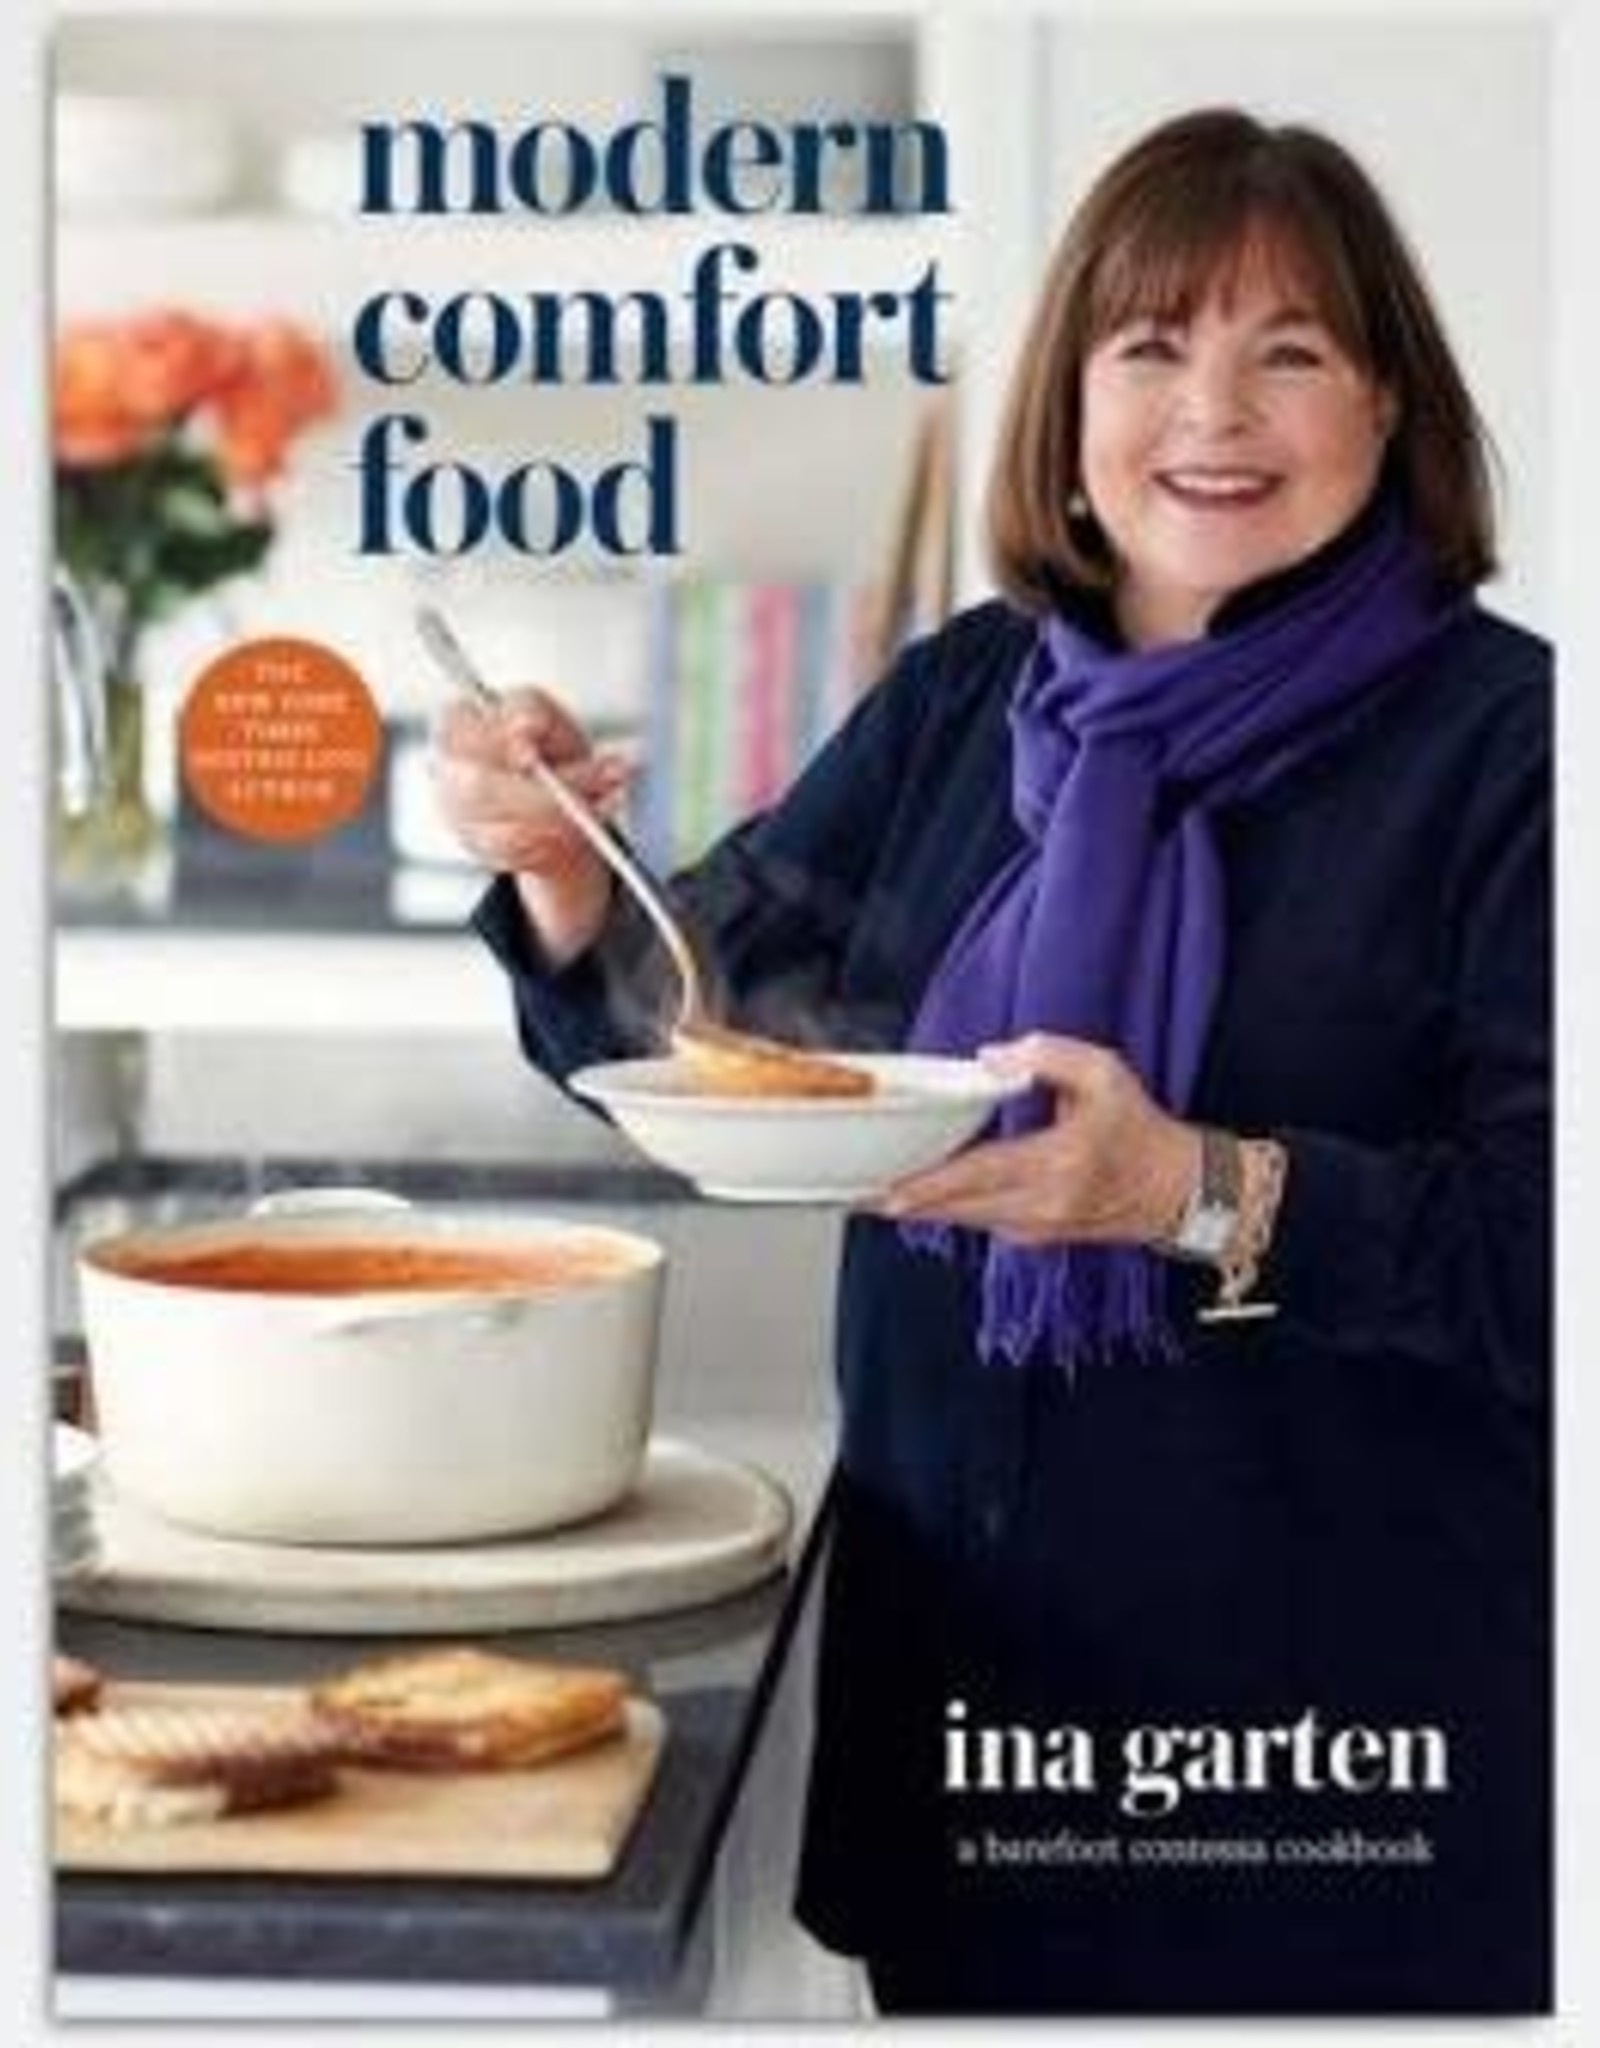 Common Grounds Barefoot Contessa: Modern Comfort Food